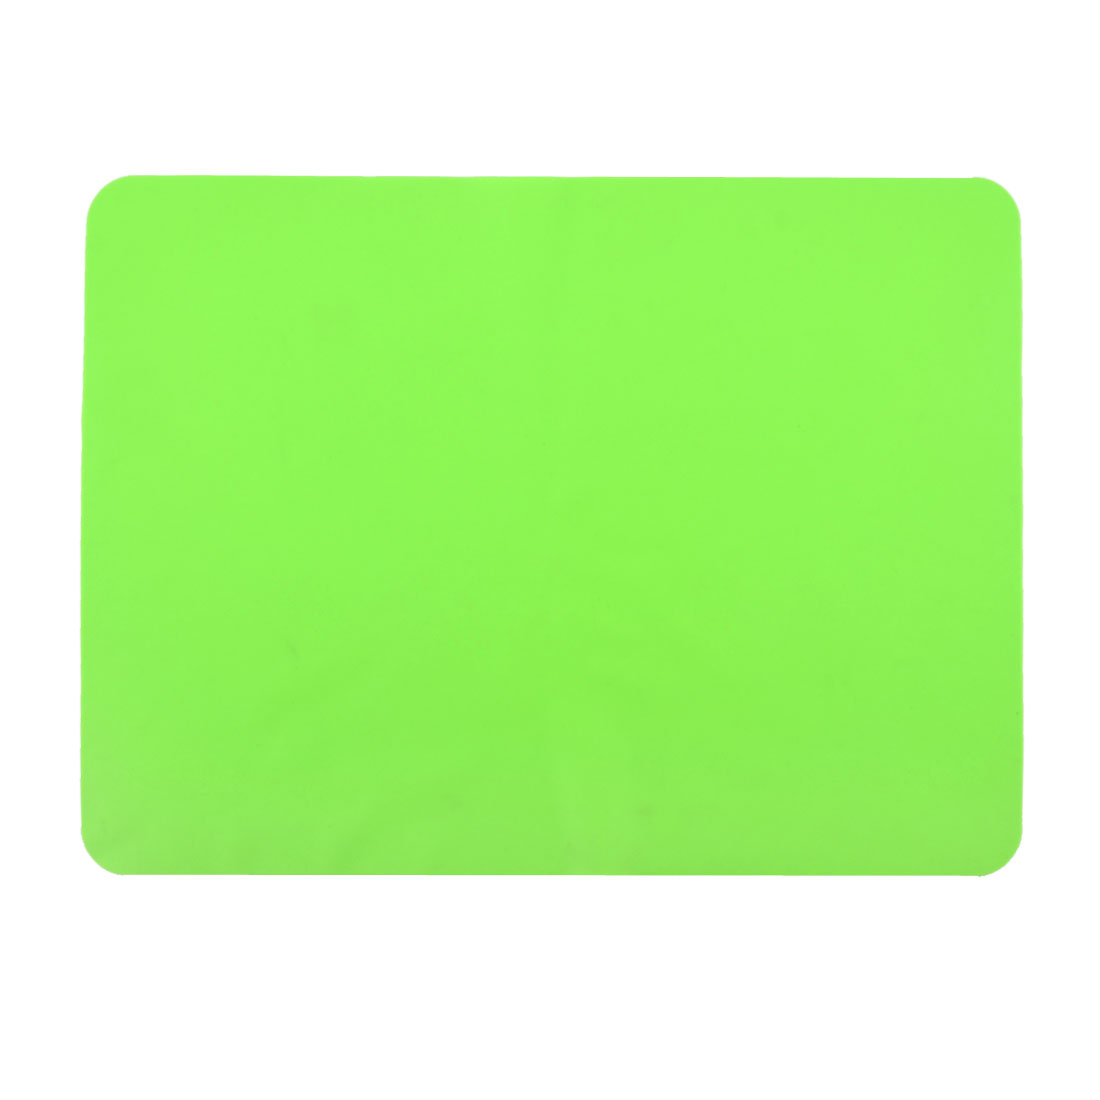 Home Restaurant Silicone Table Heat Resistant Baking Mat Cushion Placemat Green